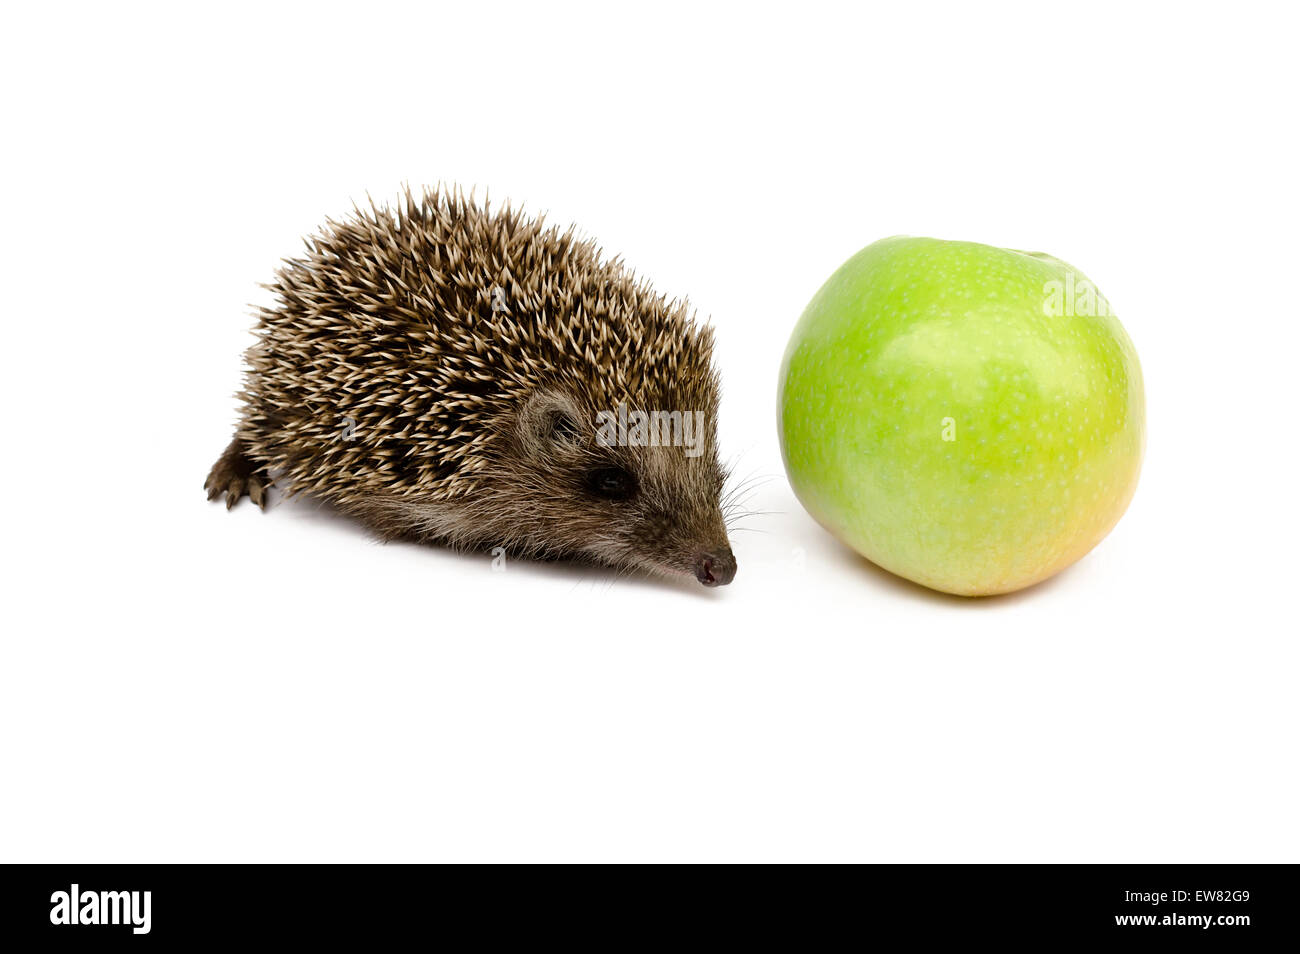 hedgehog with green apple - Stock Image